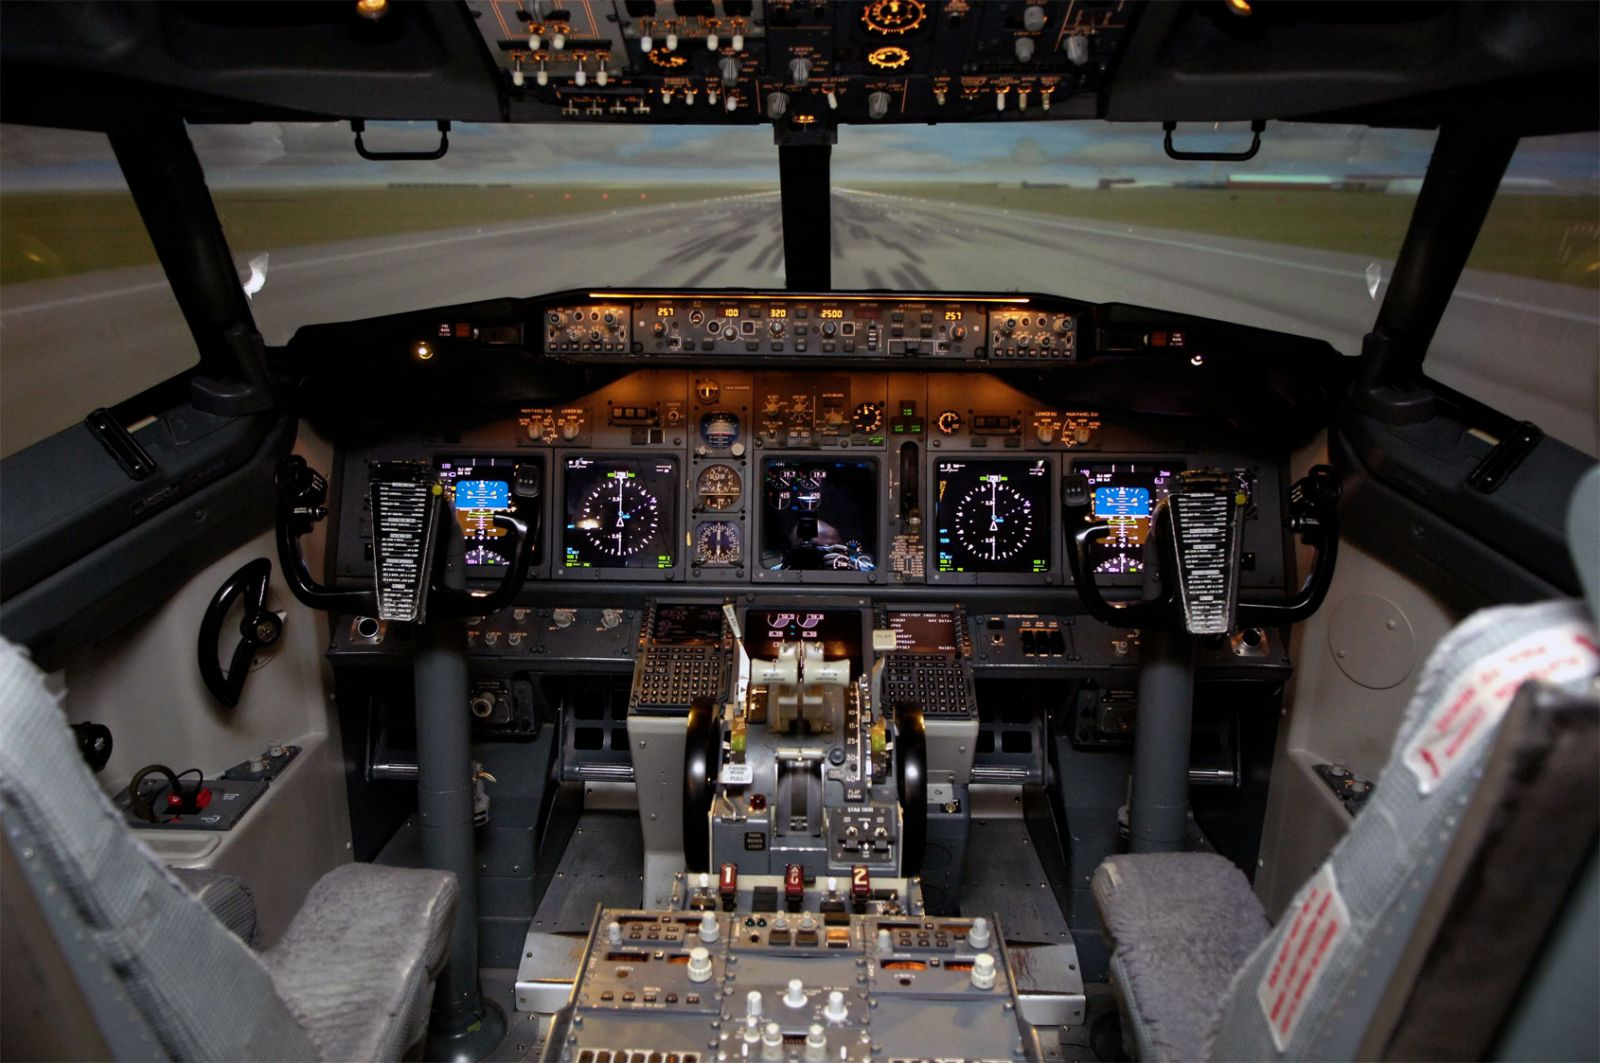 Home flight simulator set up - A Full Size 737ng Flight Simulator